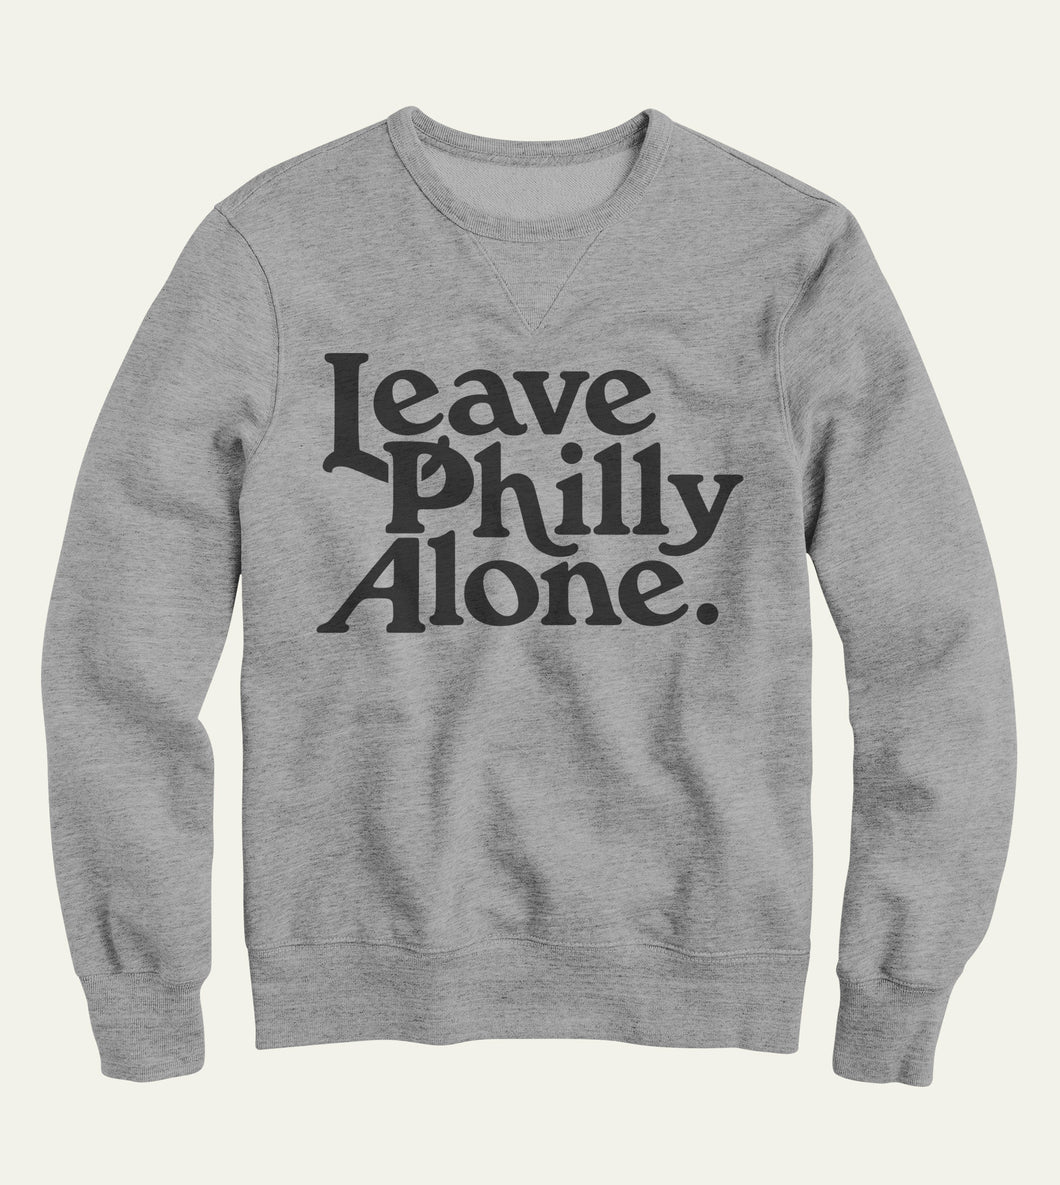 Signature Crewneck in Gray